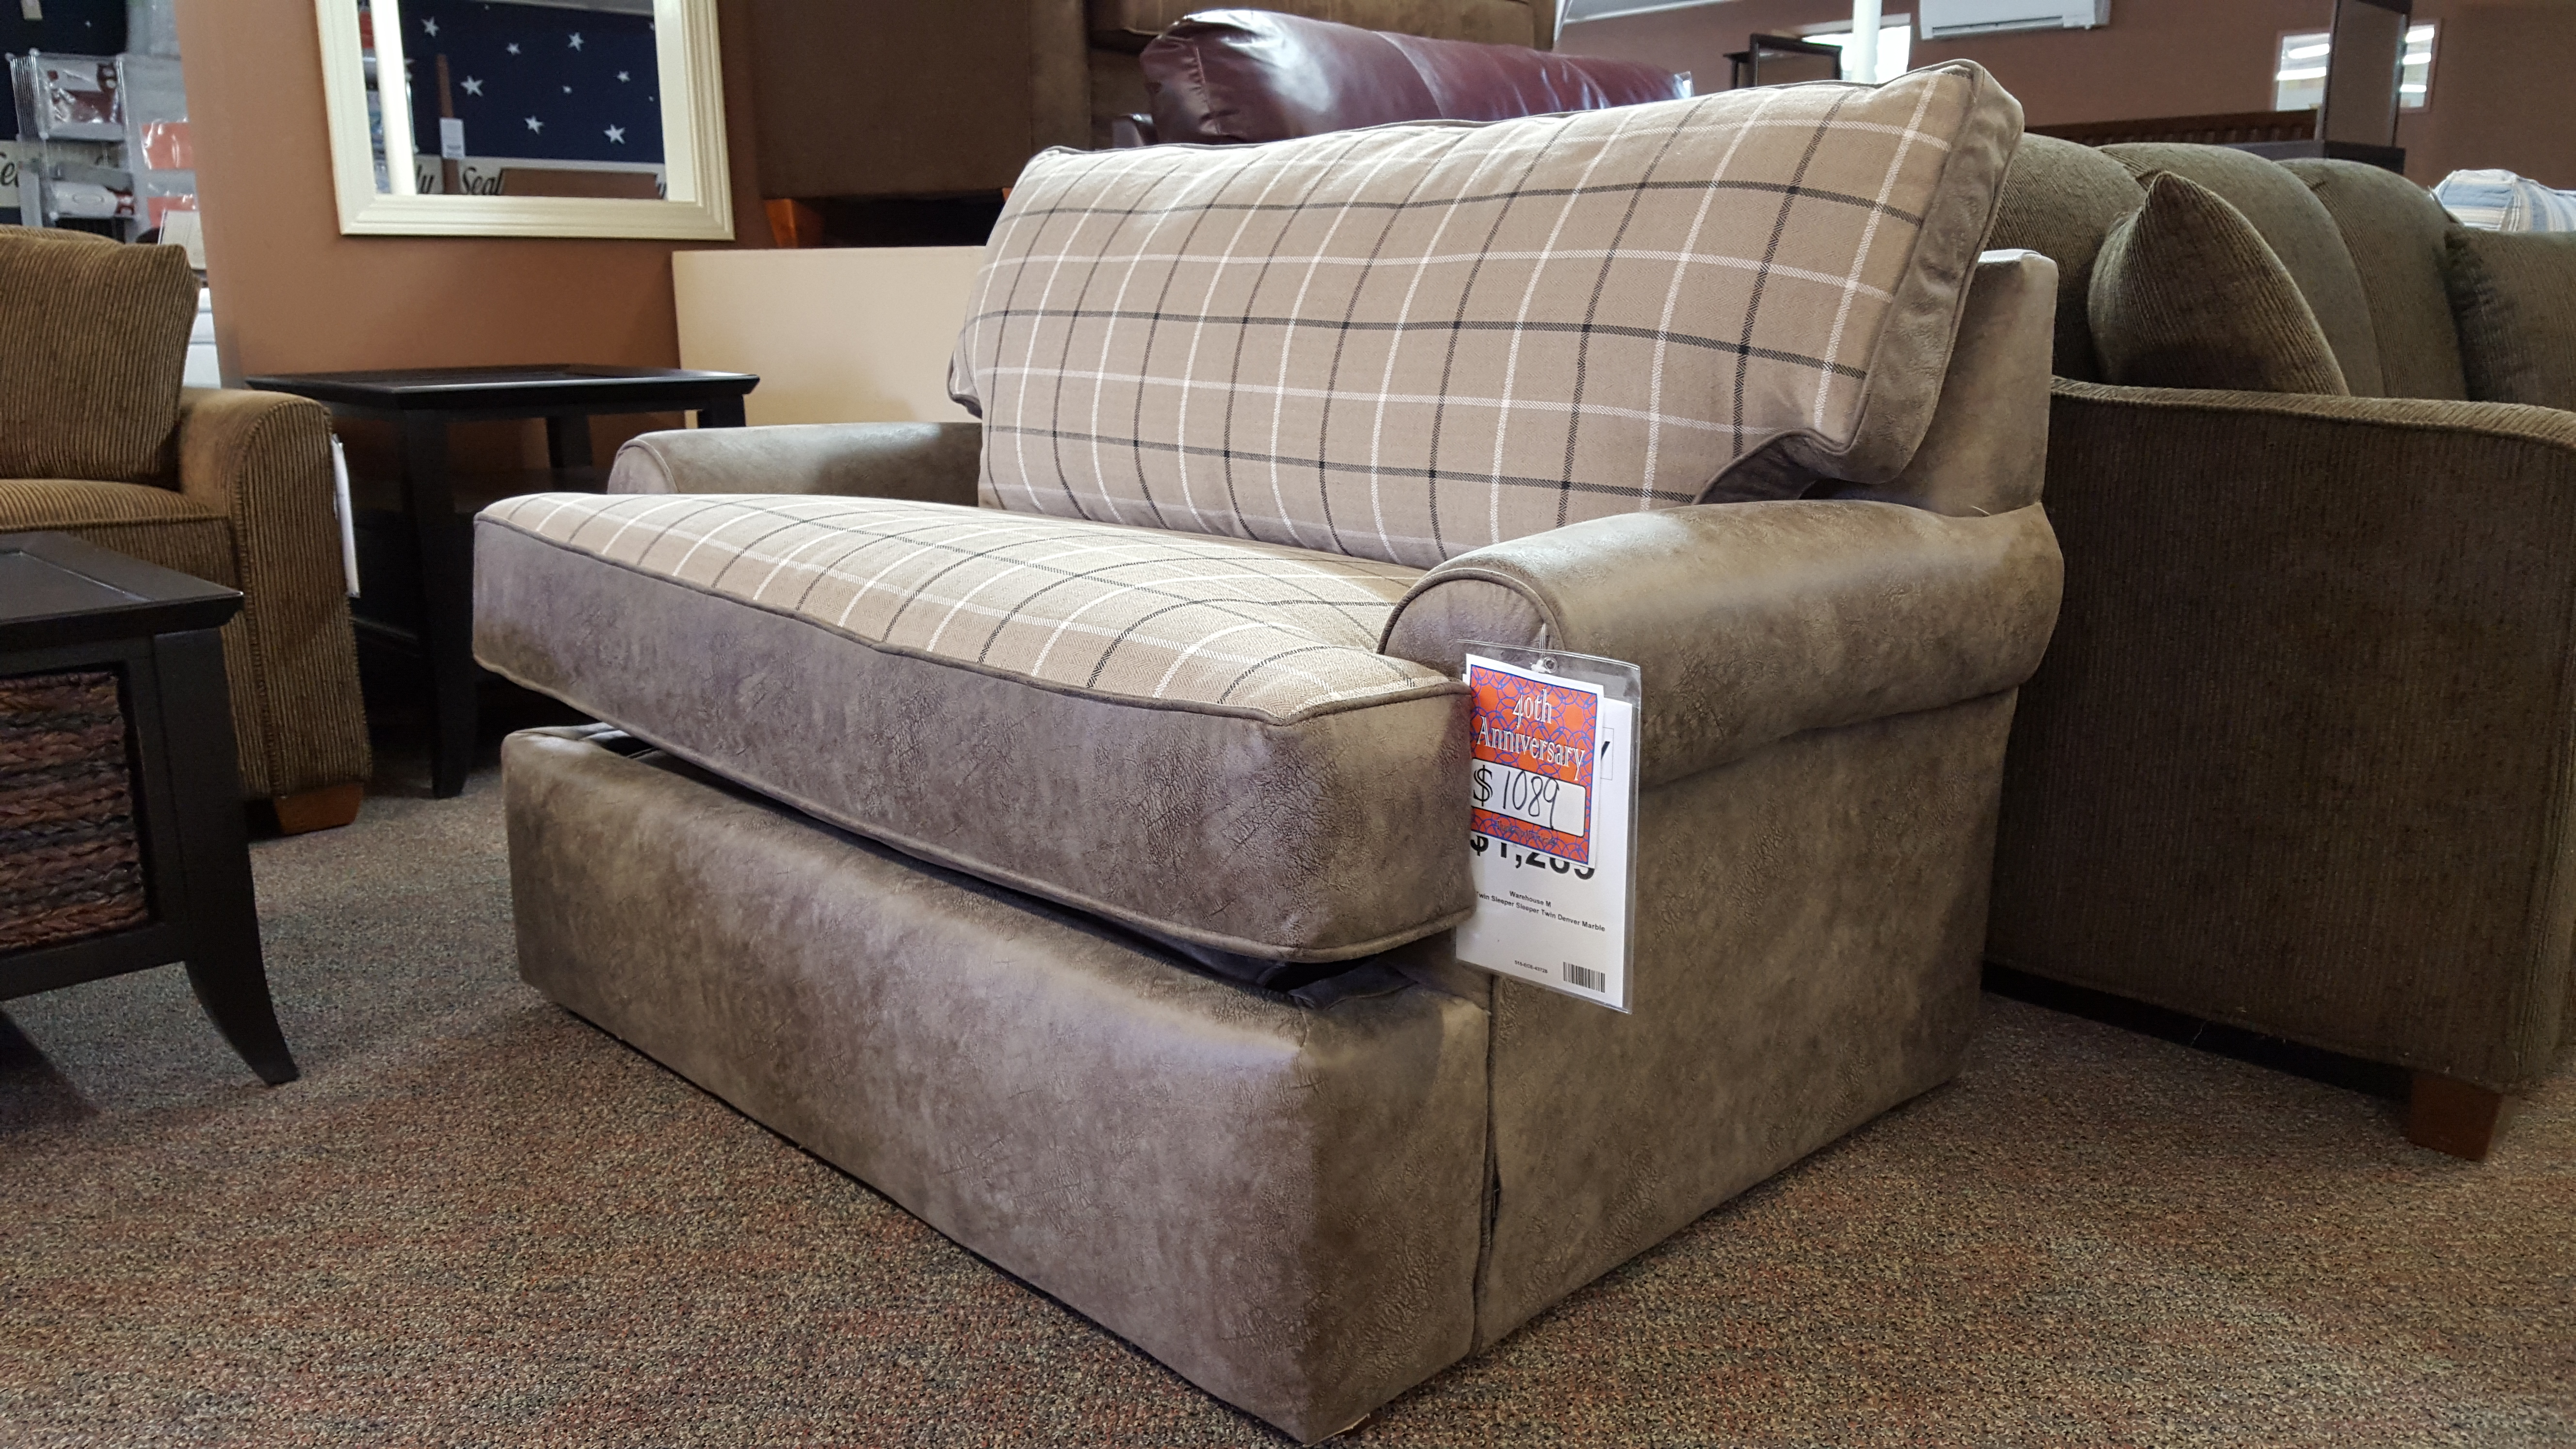 TWIN SIZE 7433 PULL OUT SLEEPER - Furniture Store Bangor ... - photo#21